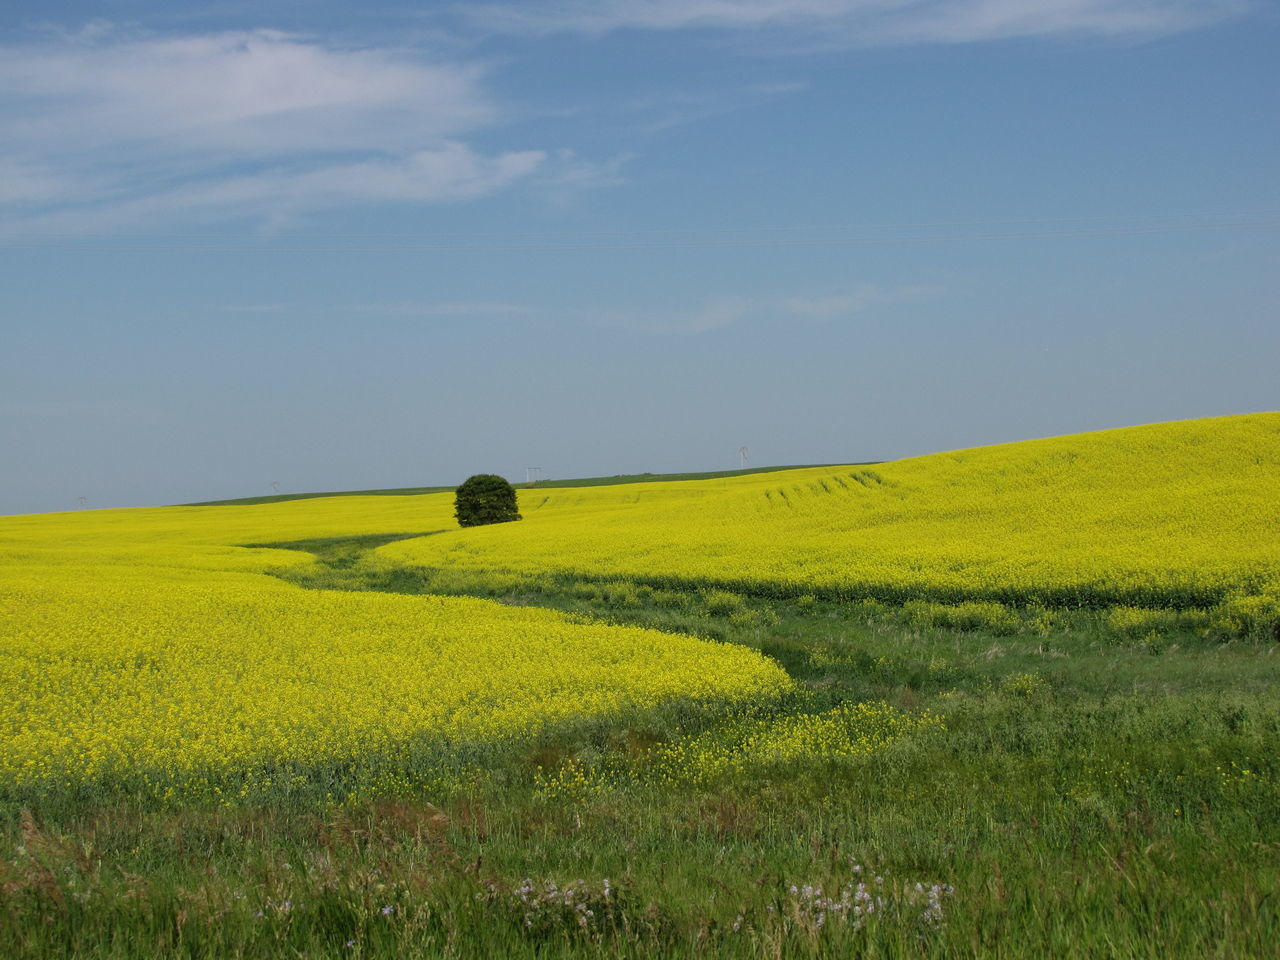 field, landscape, tranquil scene, tranquility, nature, beauty in nature, grass, no people, agriculture, day, scenics, outdoors, green color, growth, yellow, sky, rural scene